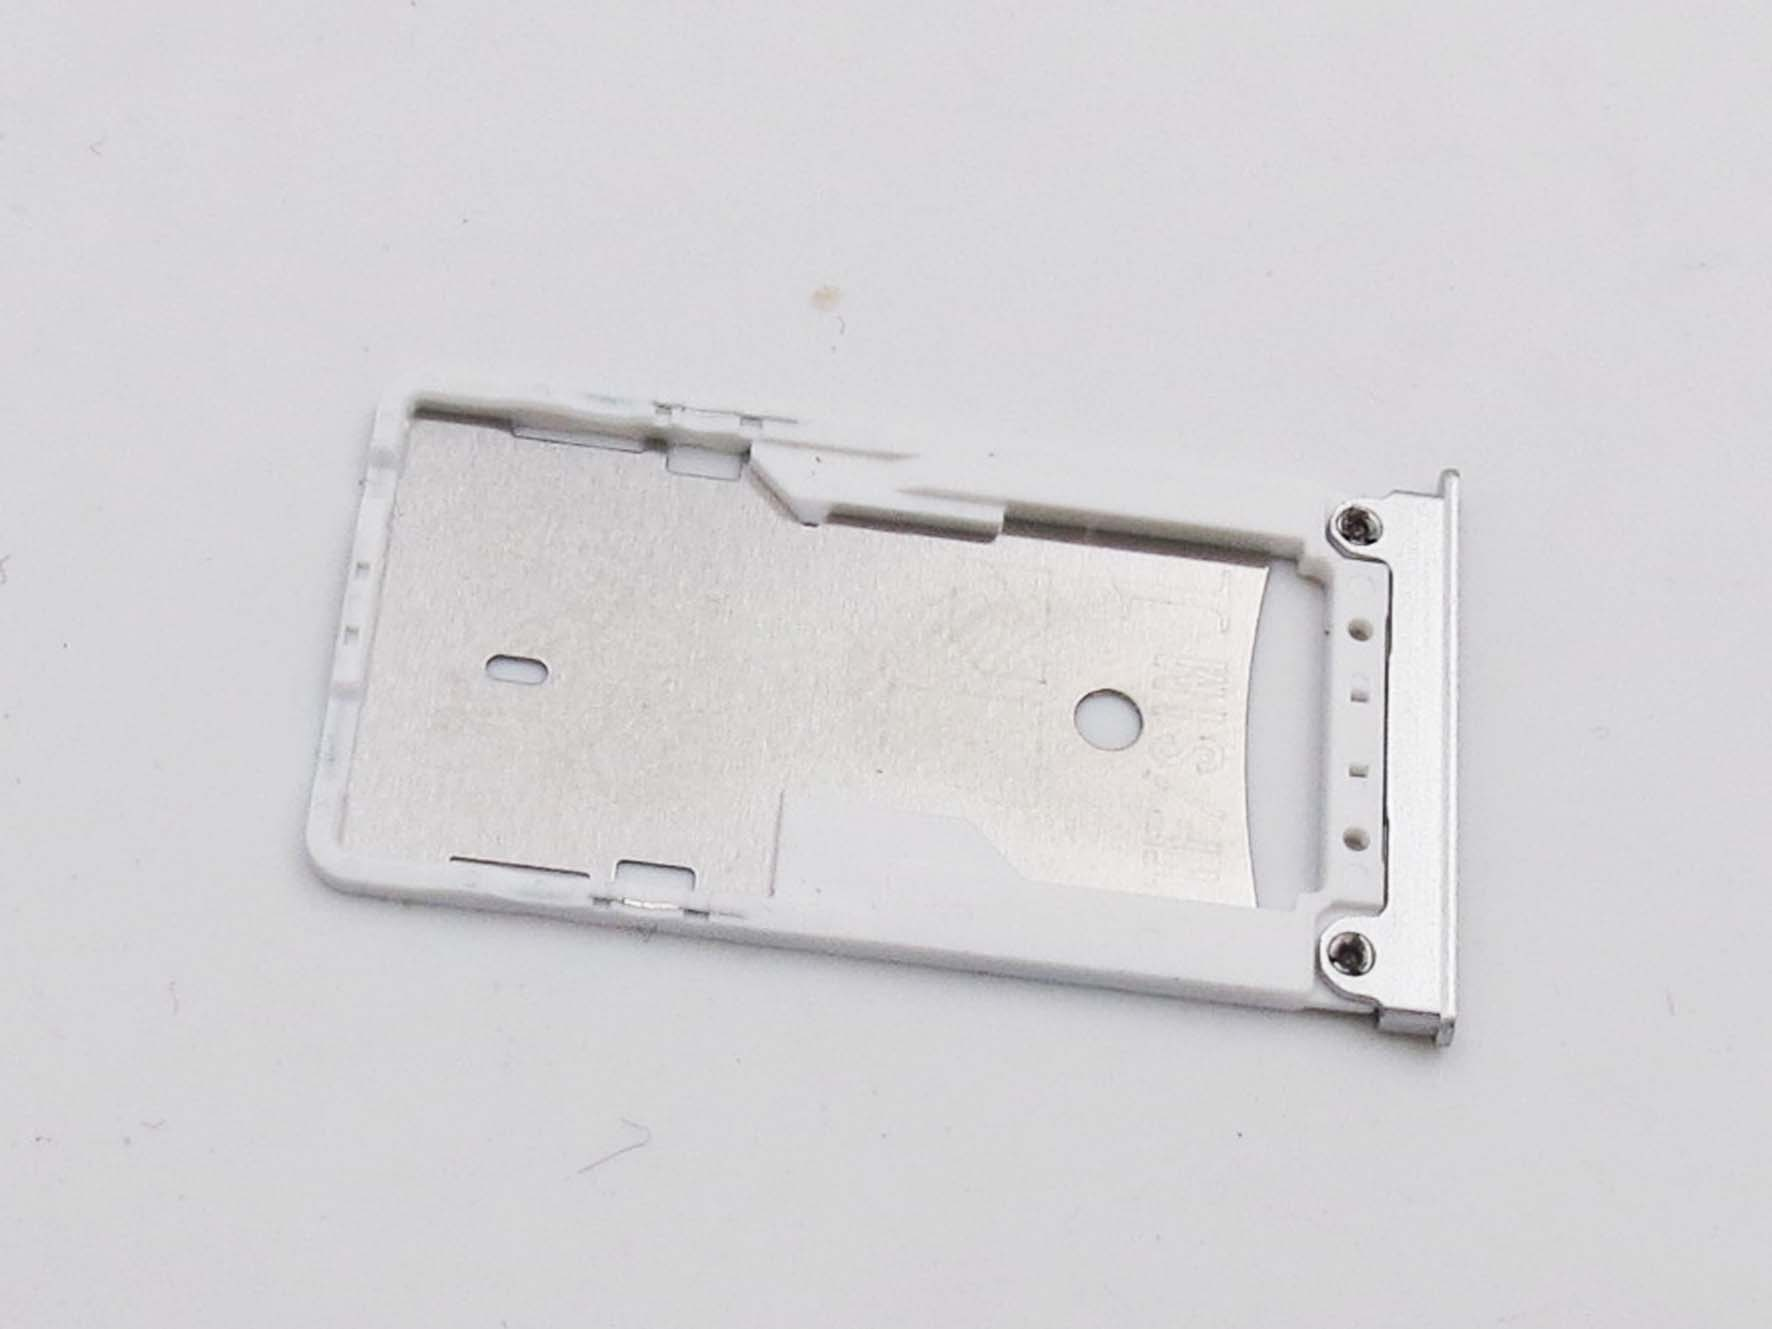 Original Dual Sim Card Slot Tray Holder for xiaomi max mi max- Silver